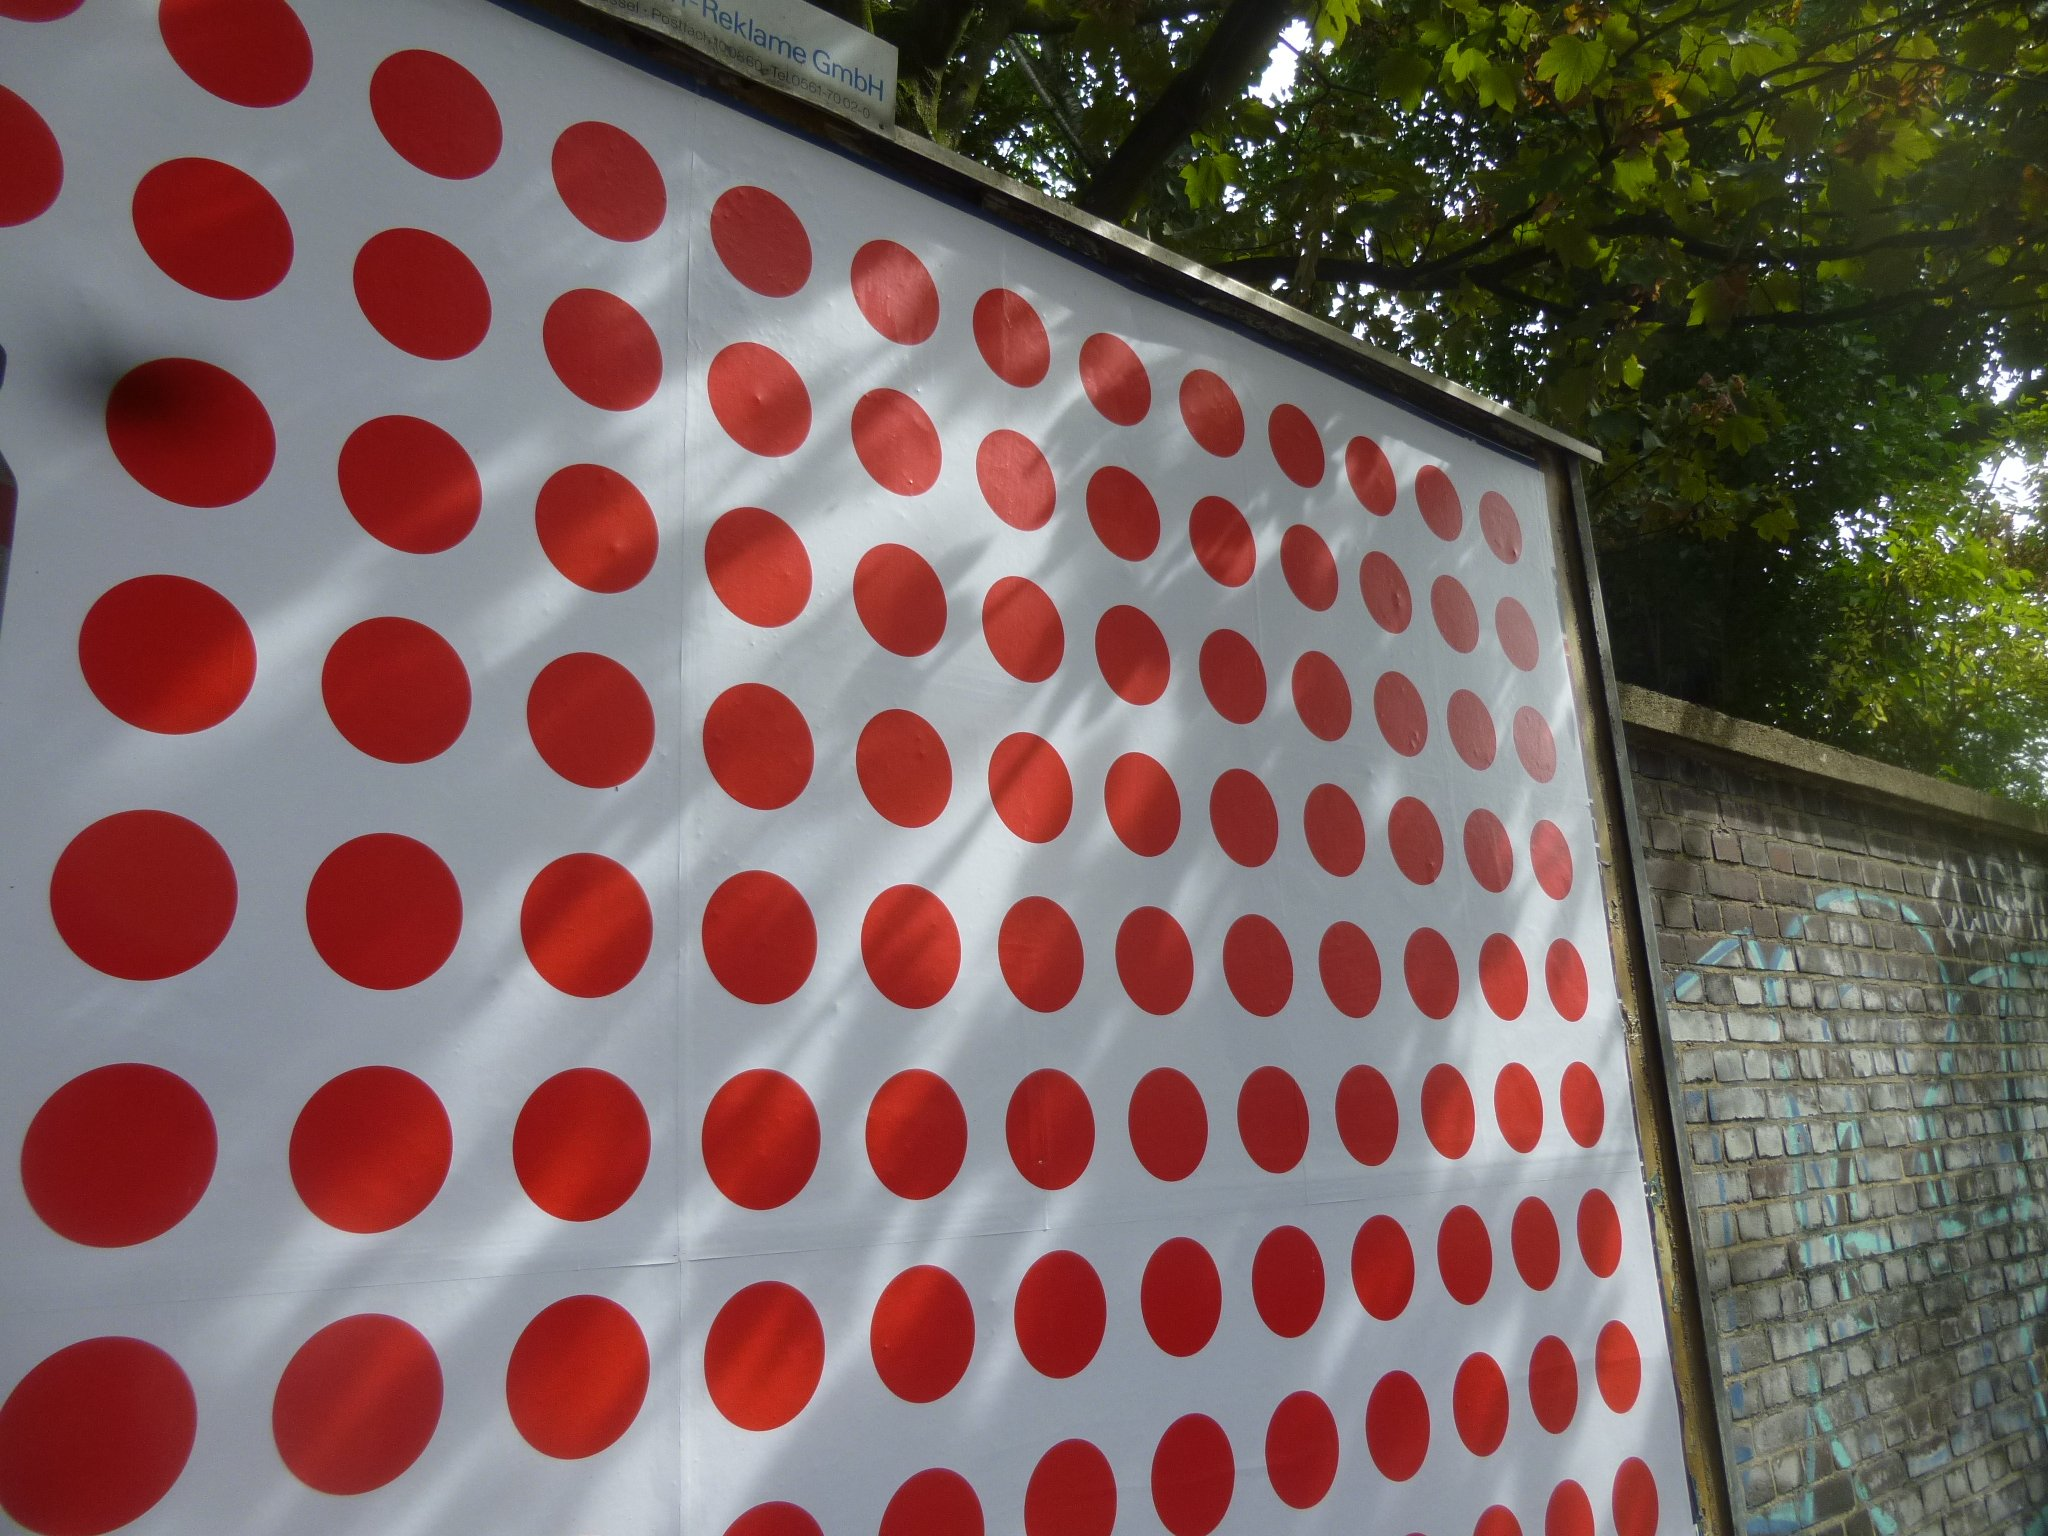 Rote Punkte - Plakatwand